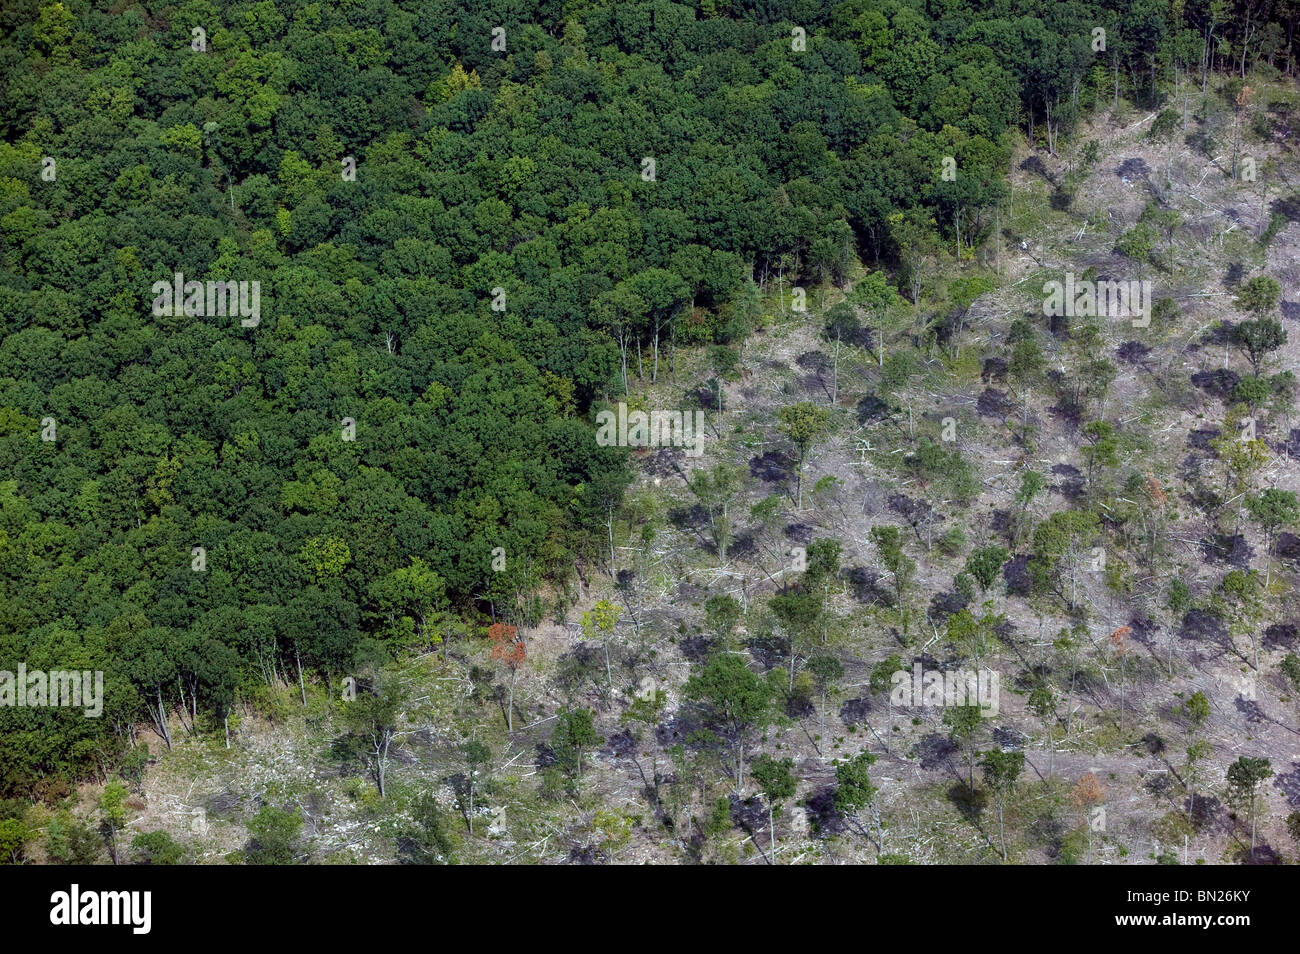 aerial view above clearcutting central Pennsylvania Stock Photo